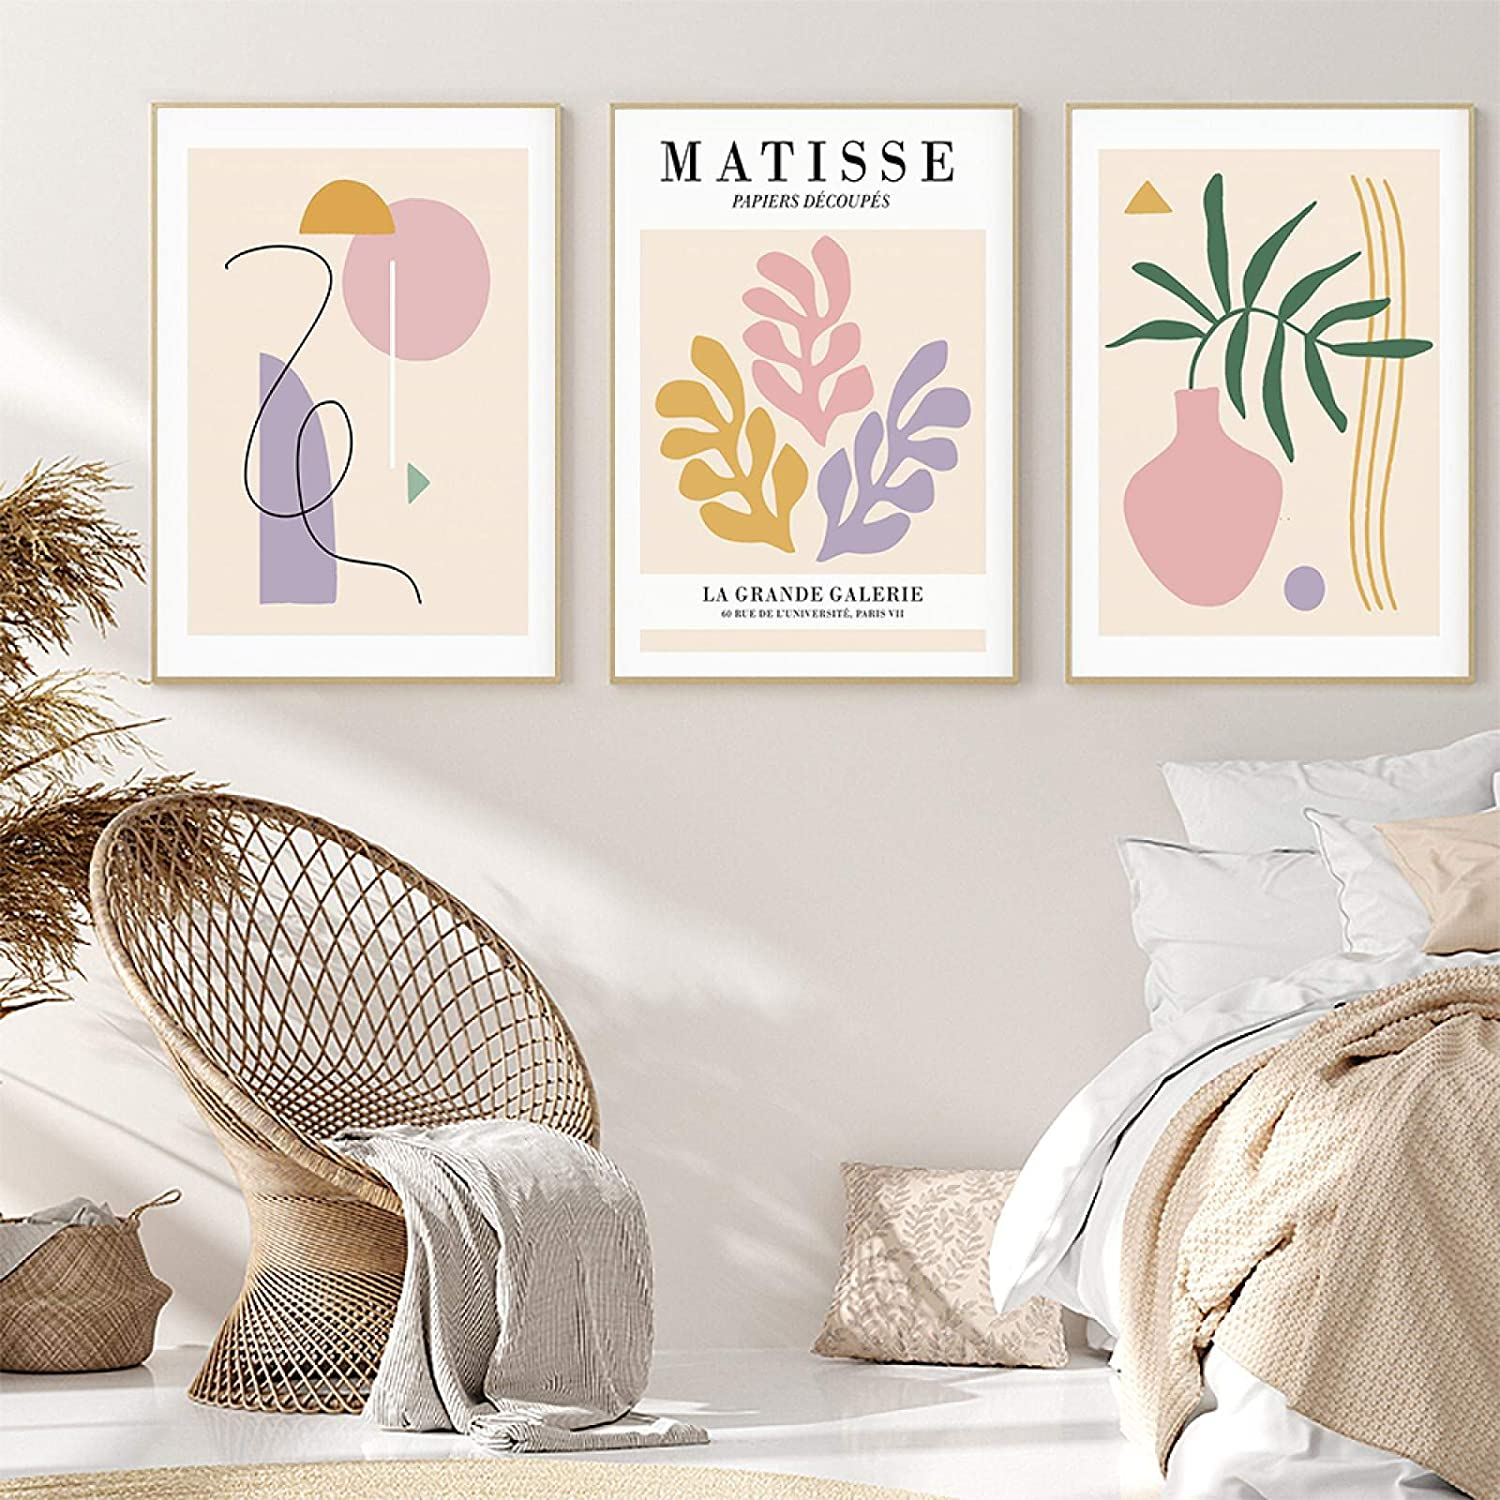 YQLKC Matisse Max 52% OFF Posters and Prints Plant Geometric Abstract Flower free shipping